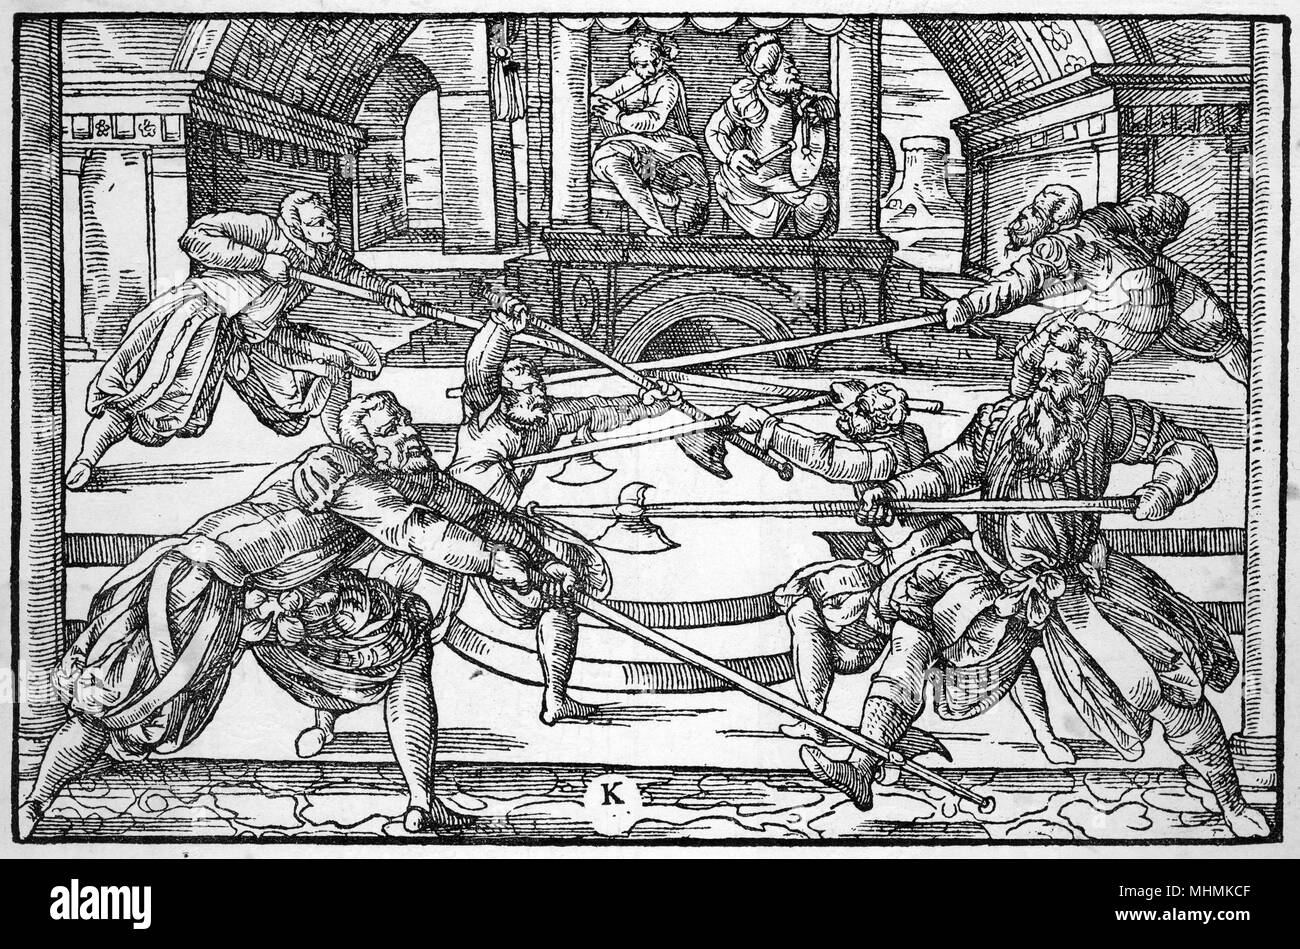 Three pairs of fencers fight with pikes, as musicians play in the background.       Date: 1570 - Stock Image